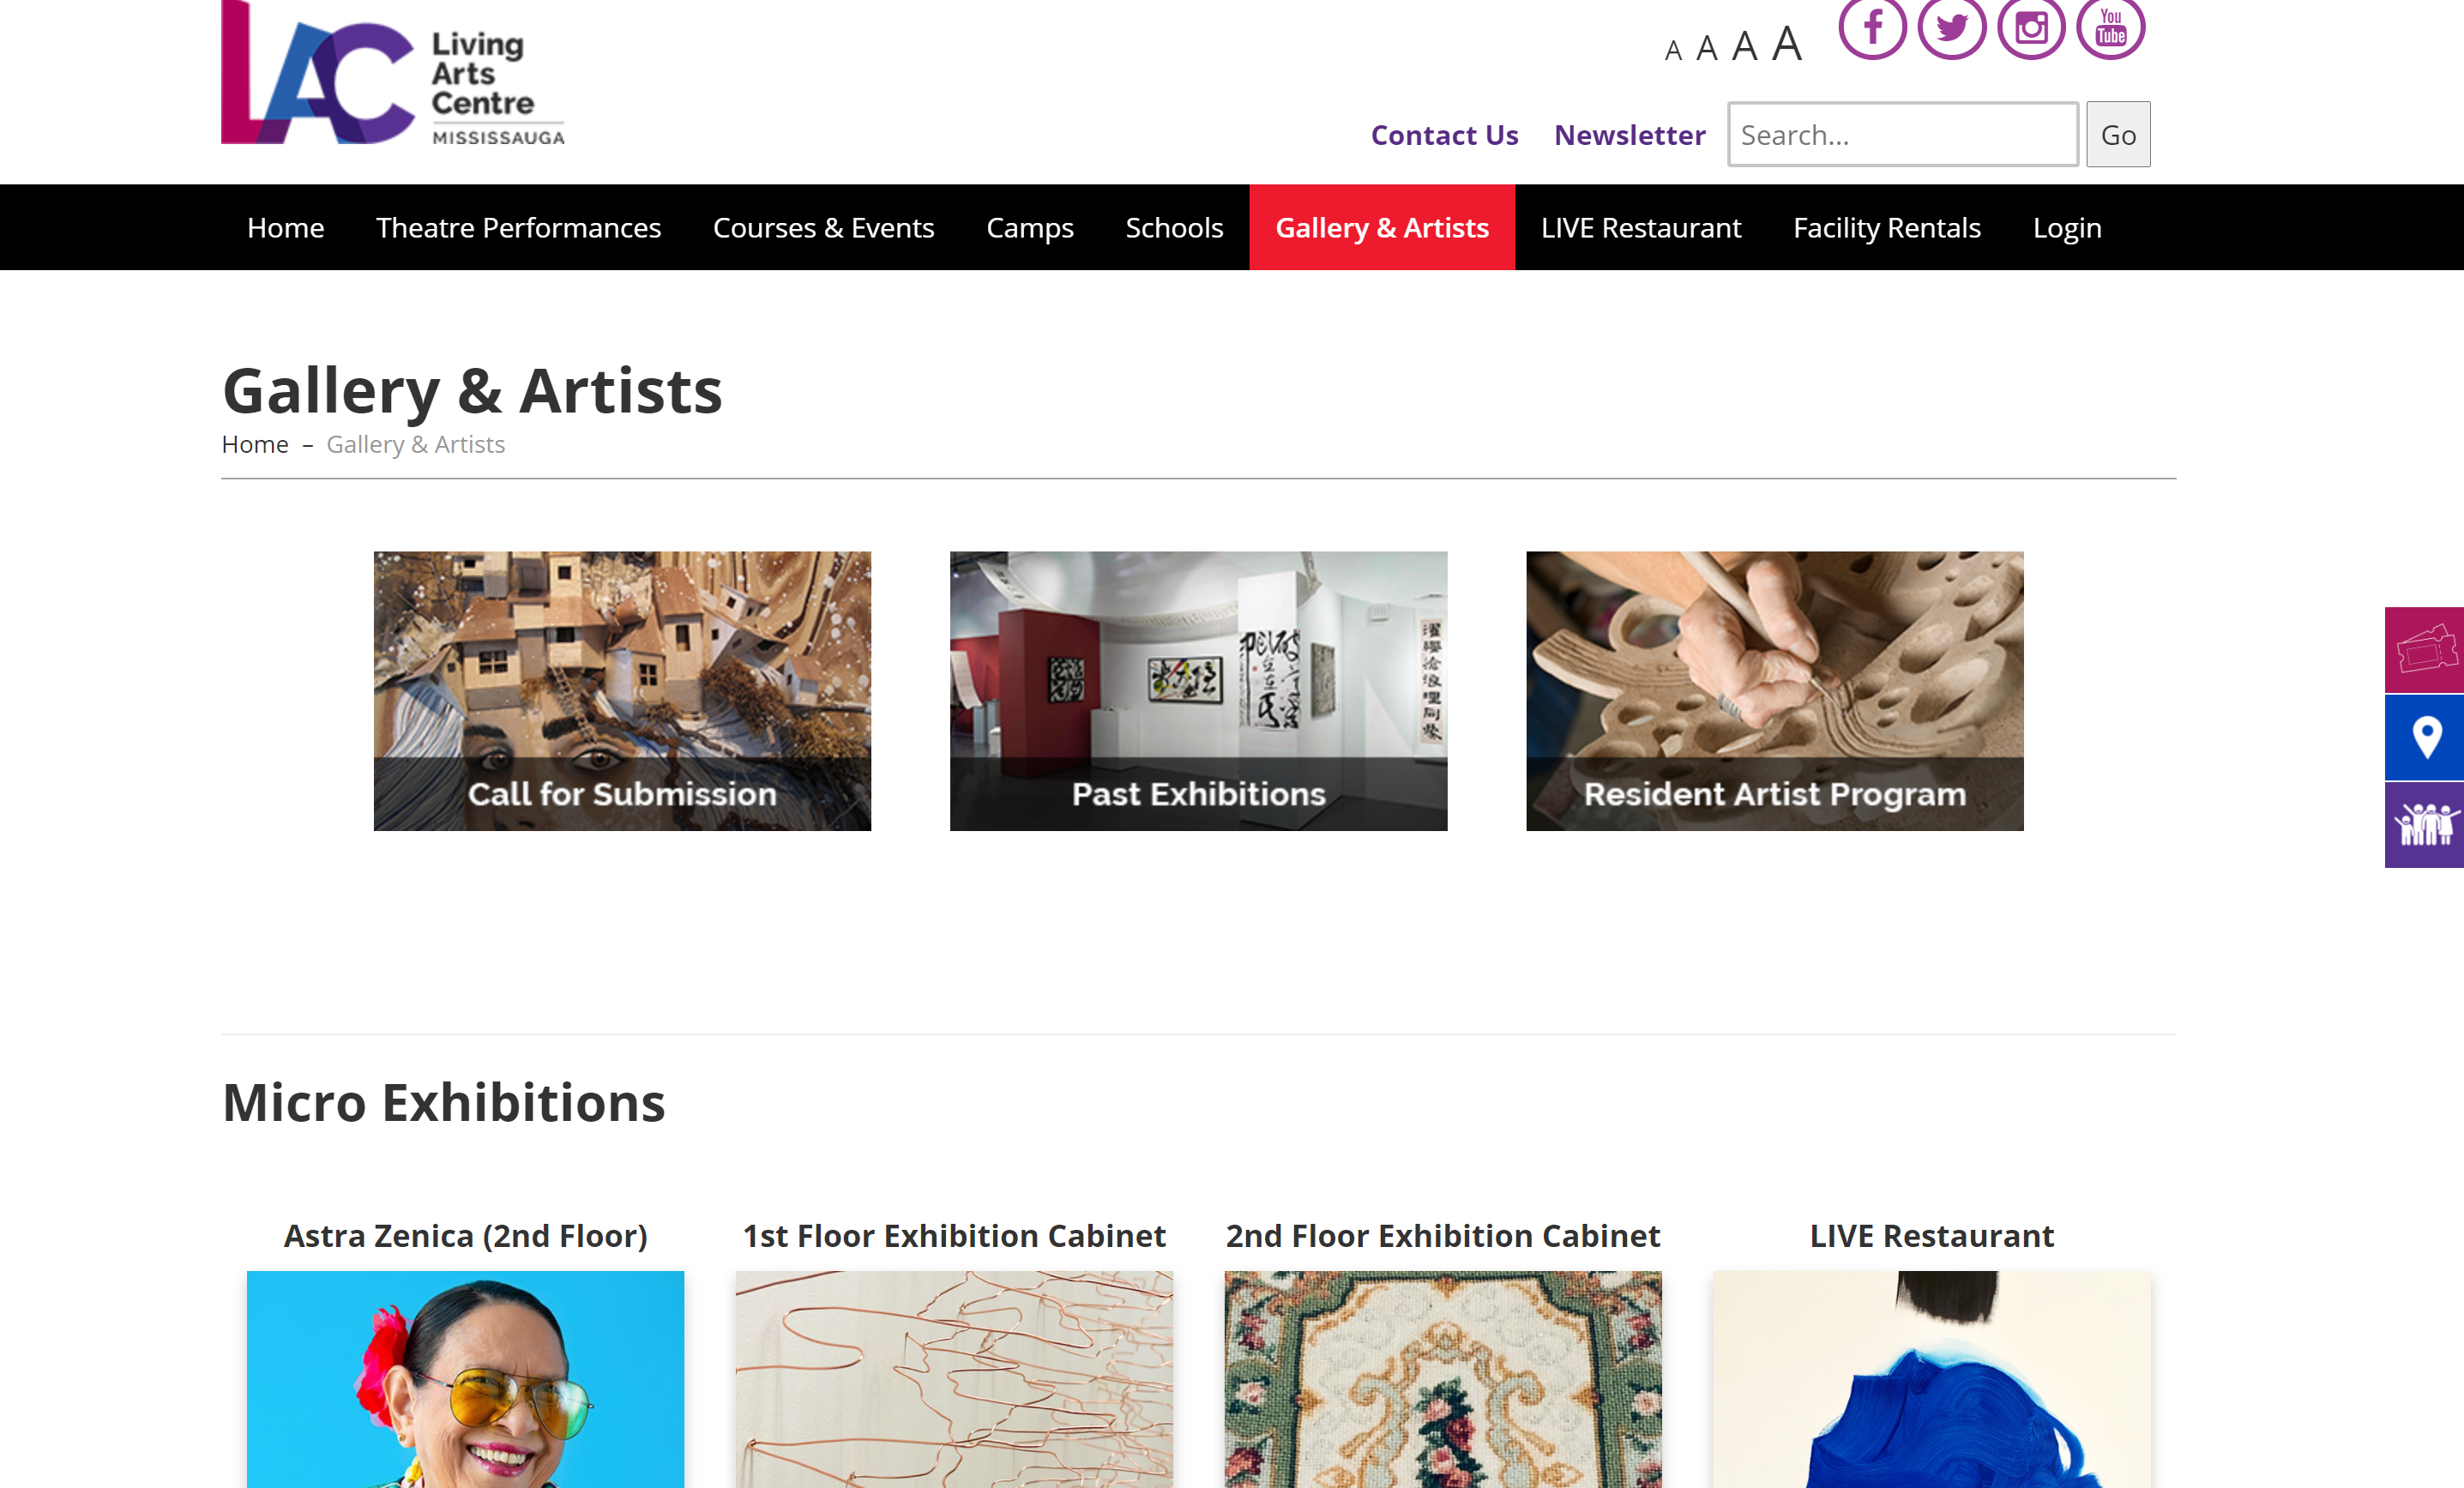 Creating an Easy Editor Experience for Living Arts Center Team